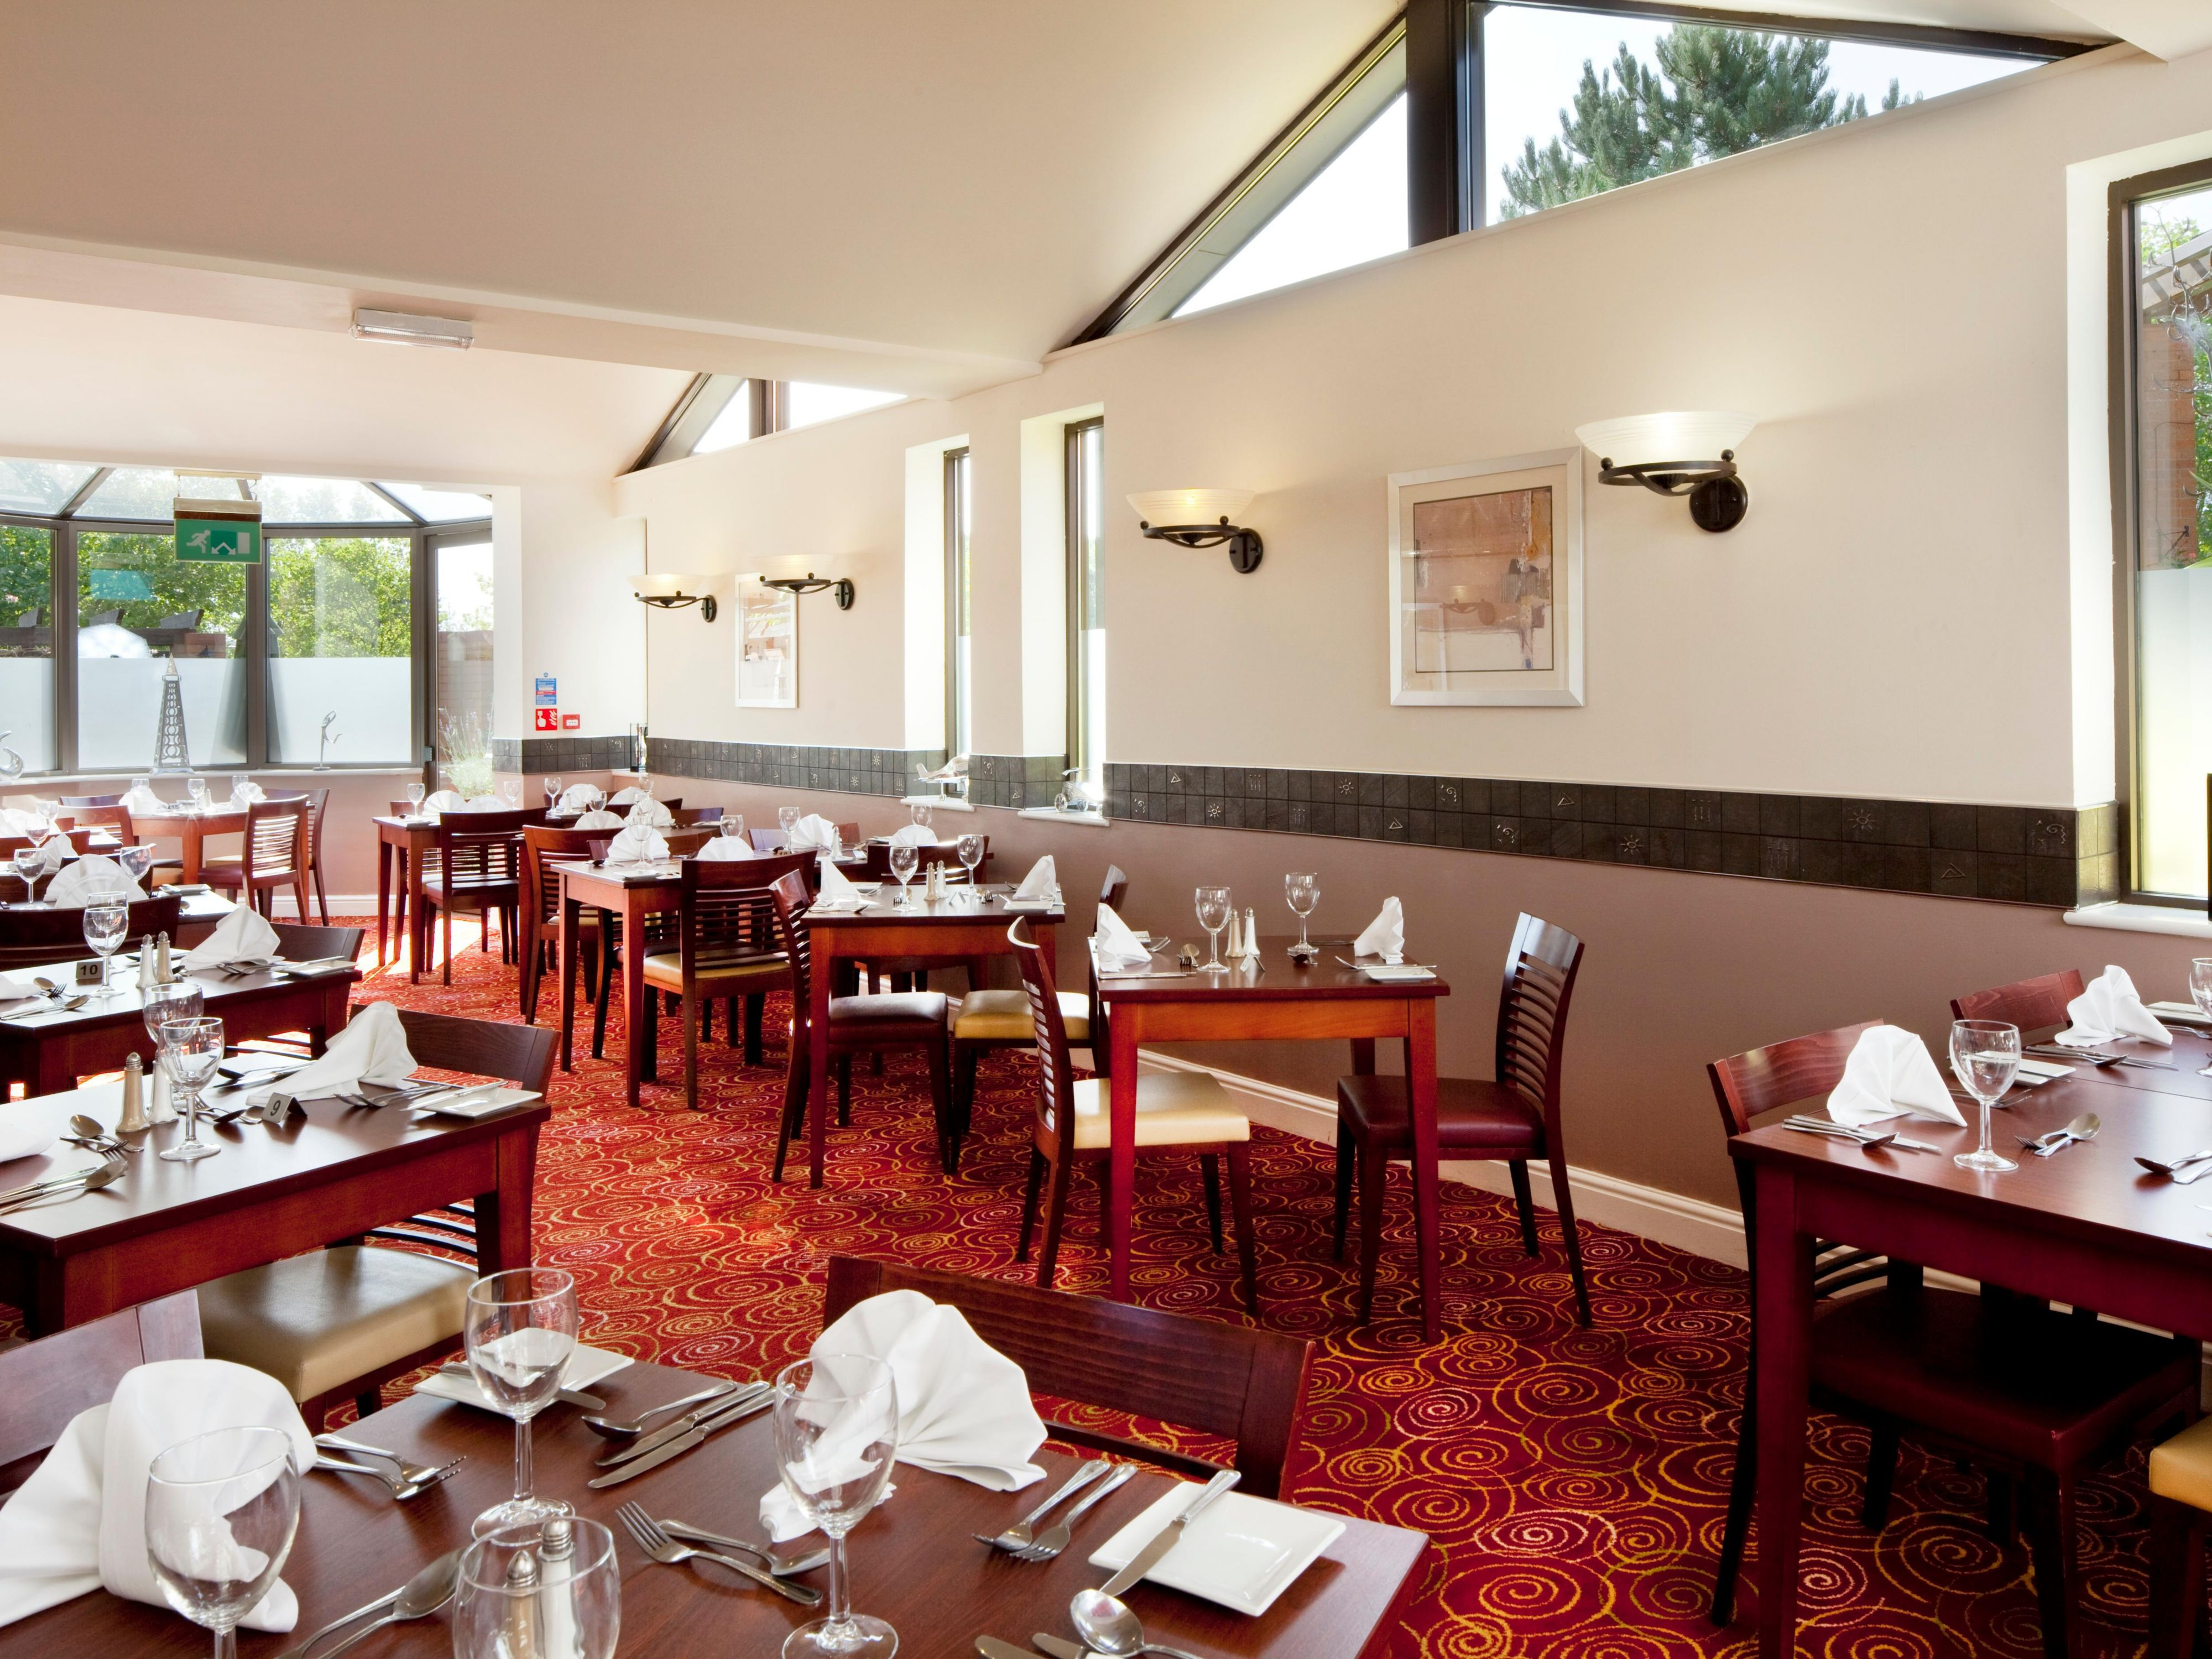 A warm welcome awaits you in Spa's Restaurant